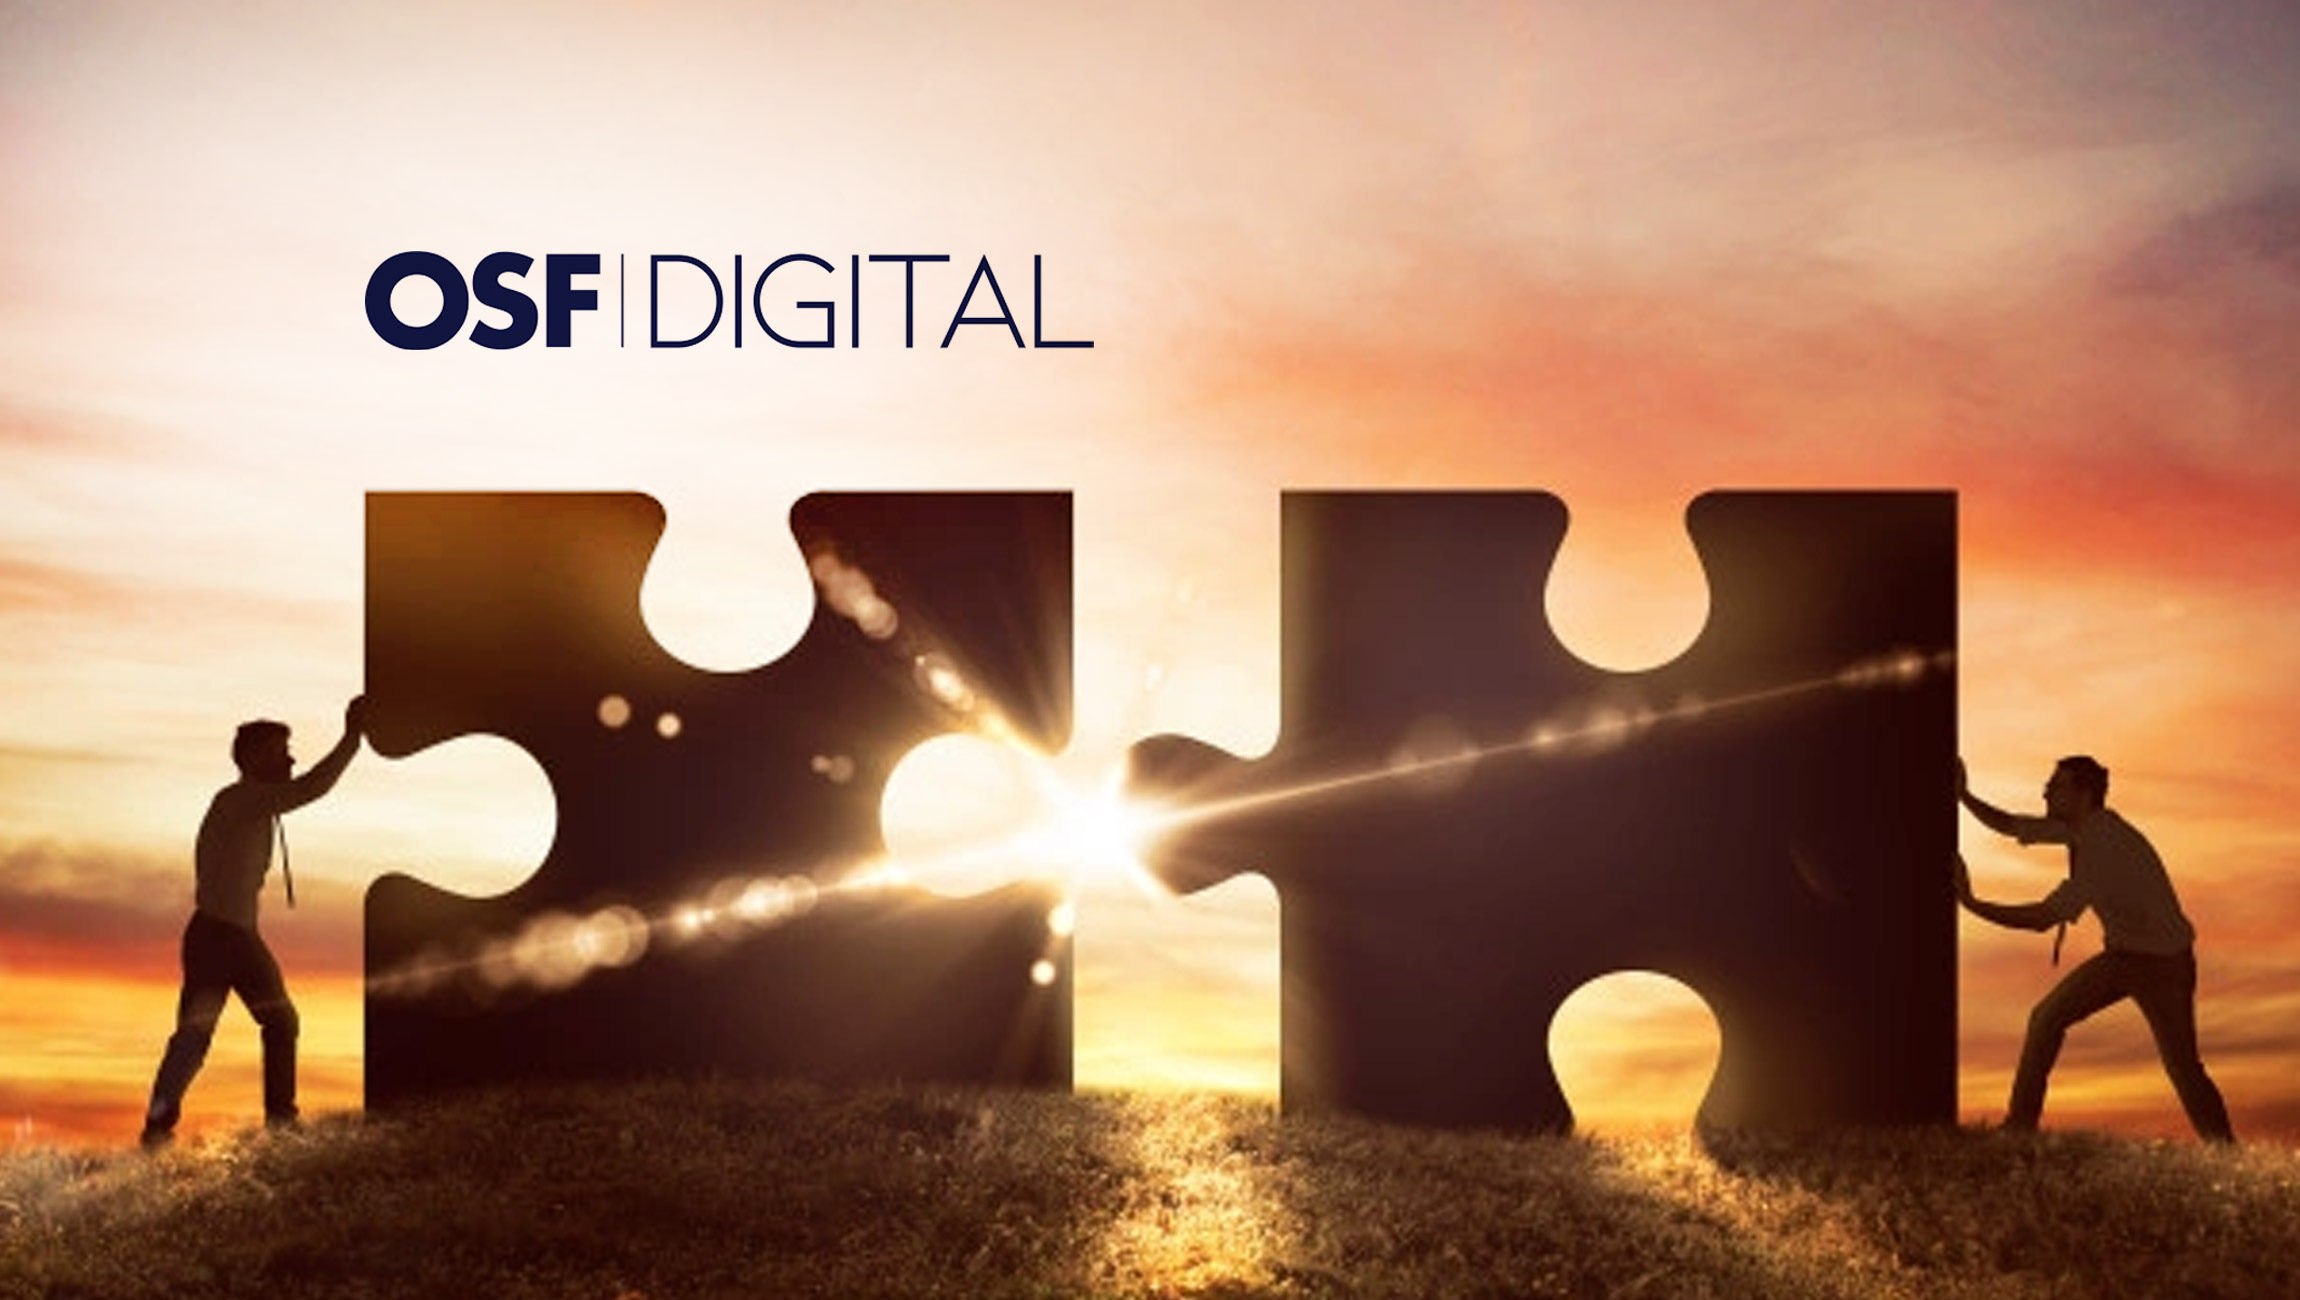 OSF Digital Acquires Relation1 to Strengthen Marketing Cloud Expertise in North America